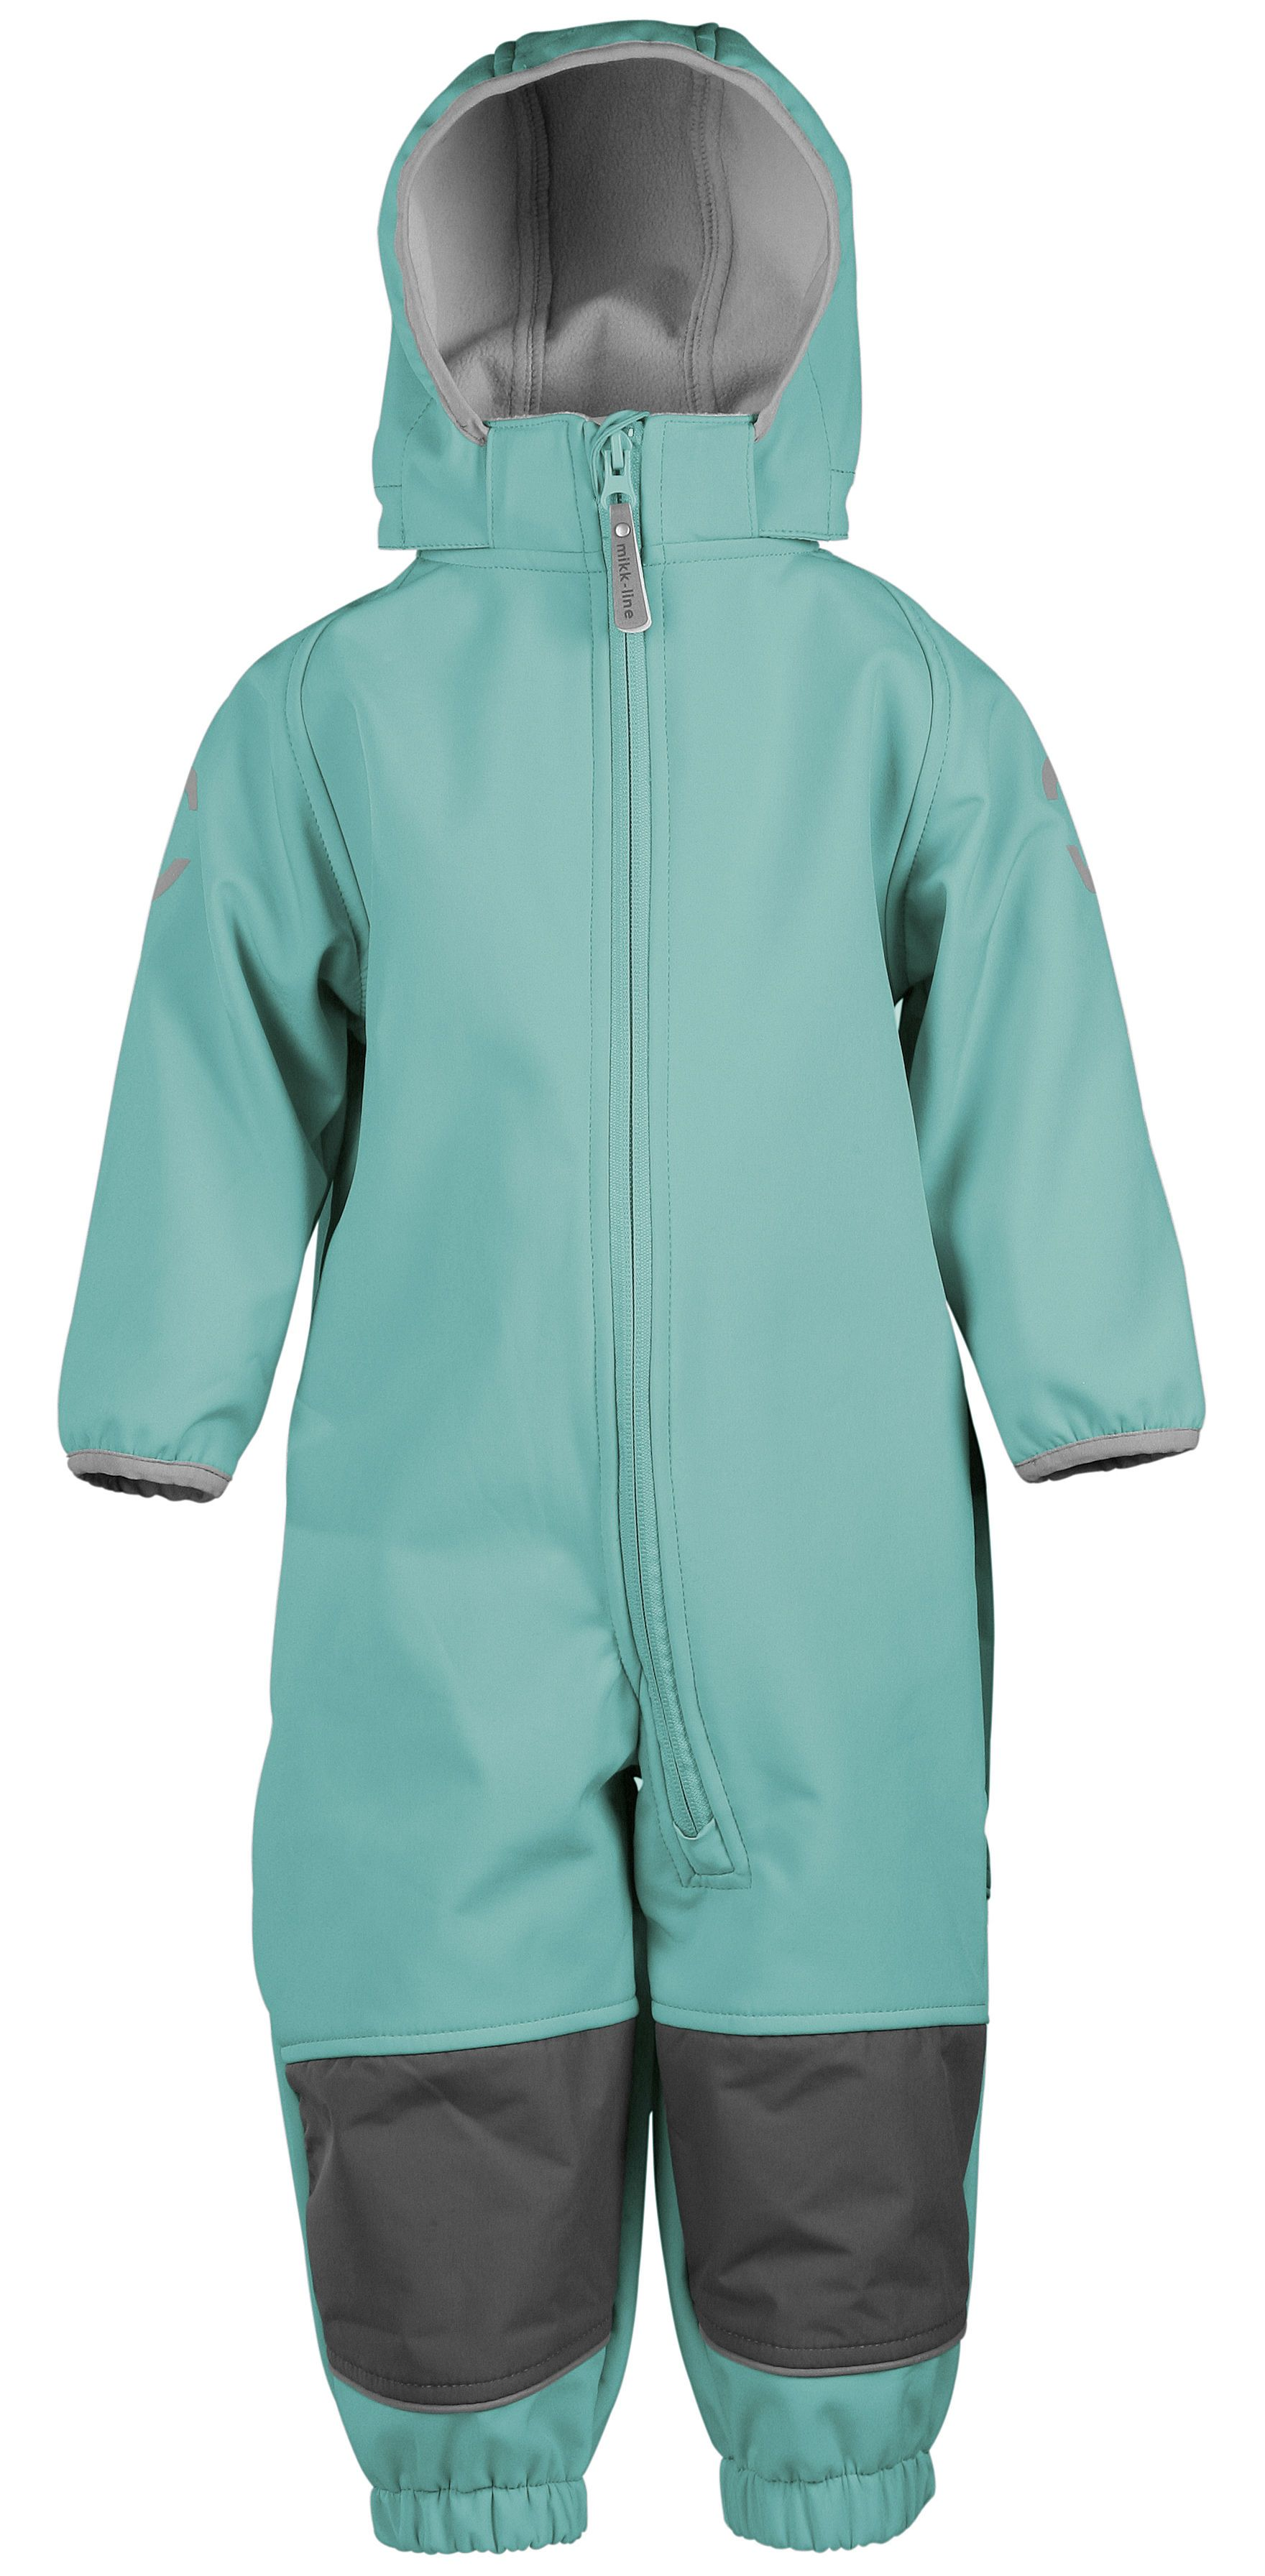 Image of Softshell dragt fra Mikk-Line - Mint (16002-226)